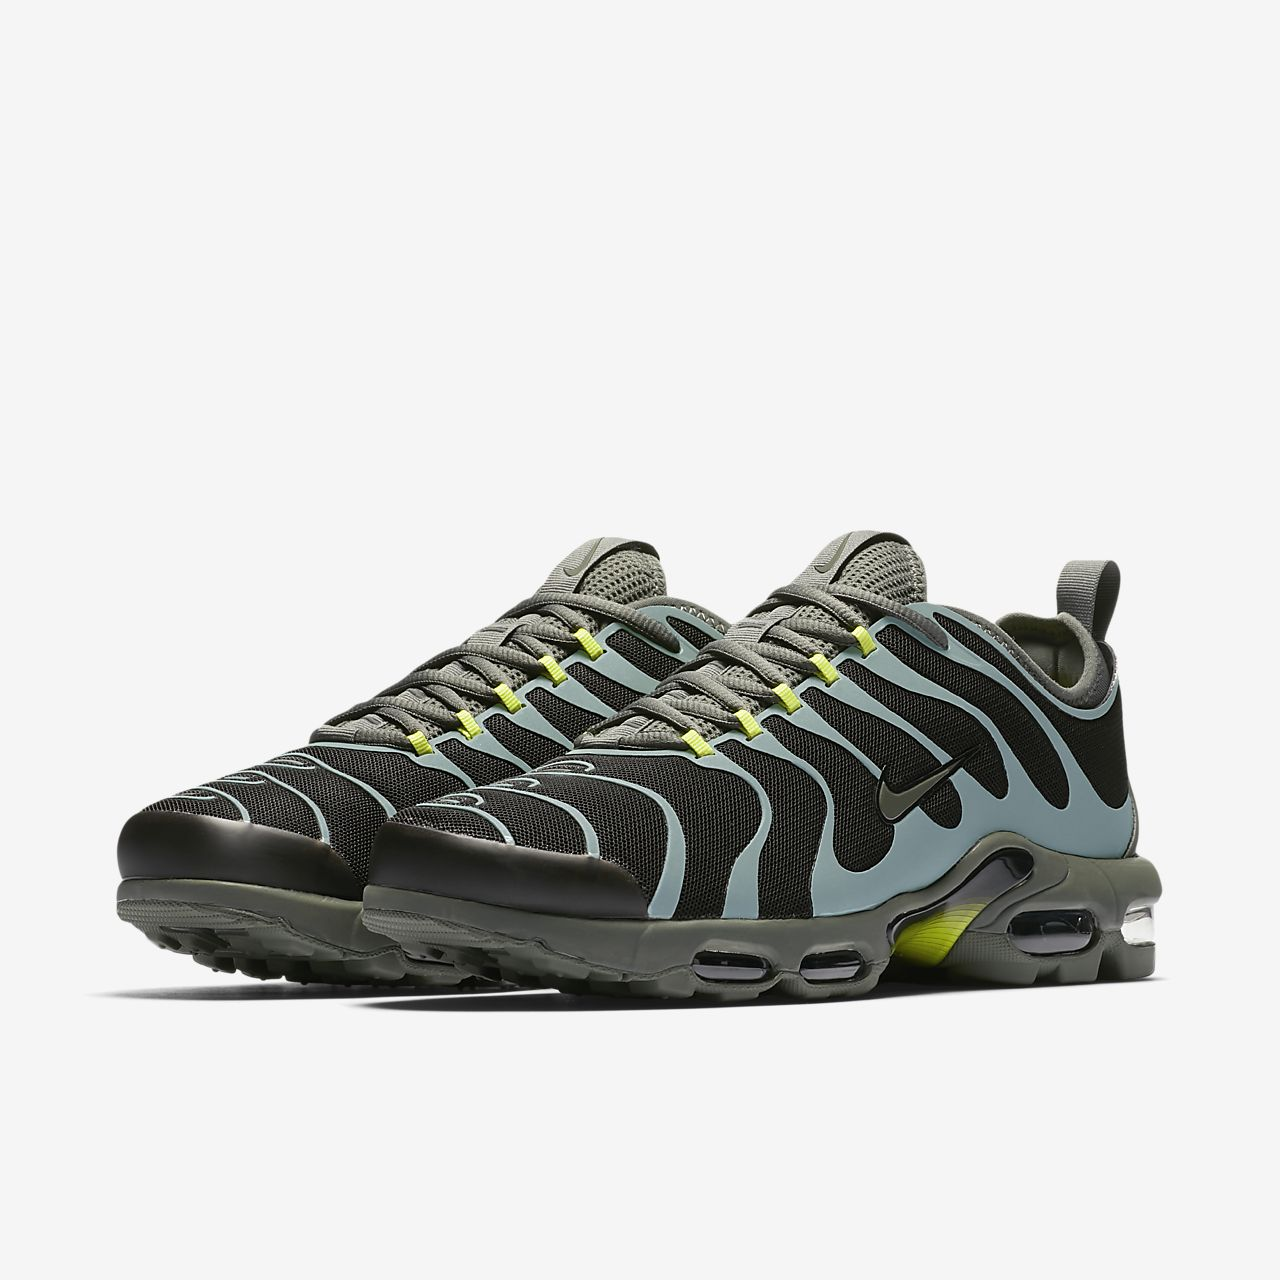 Spring Summer 2018 Running Shoes Canada Nike Air Max Plus Men s Black Team Orange Anthracite Wolf Grey Shoes Size 8 5 UK Size 9 5 US 7 5 7 2 5 13